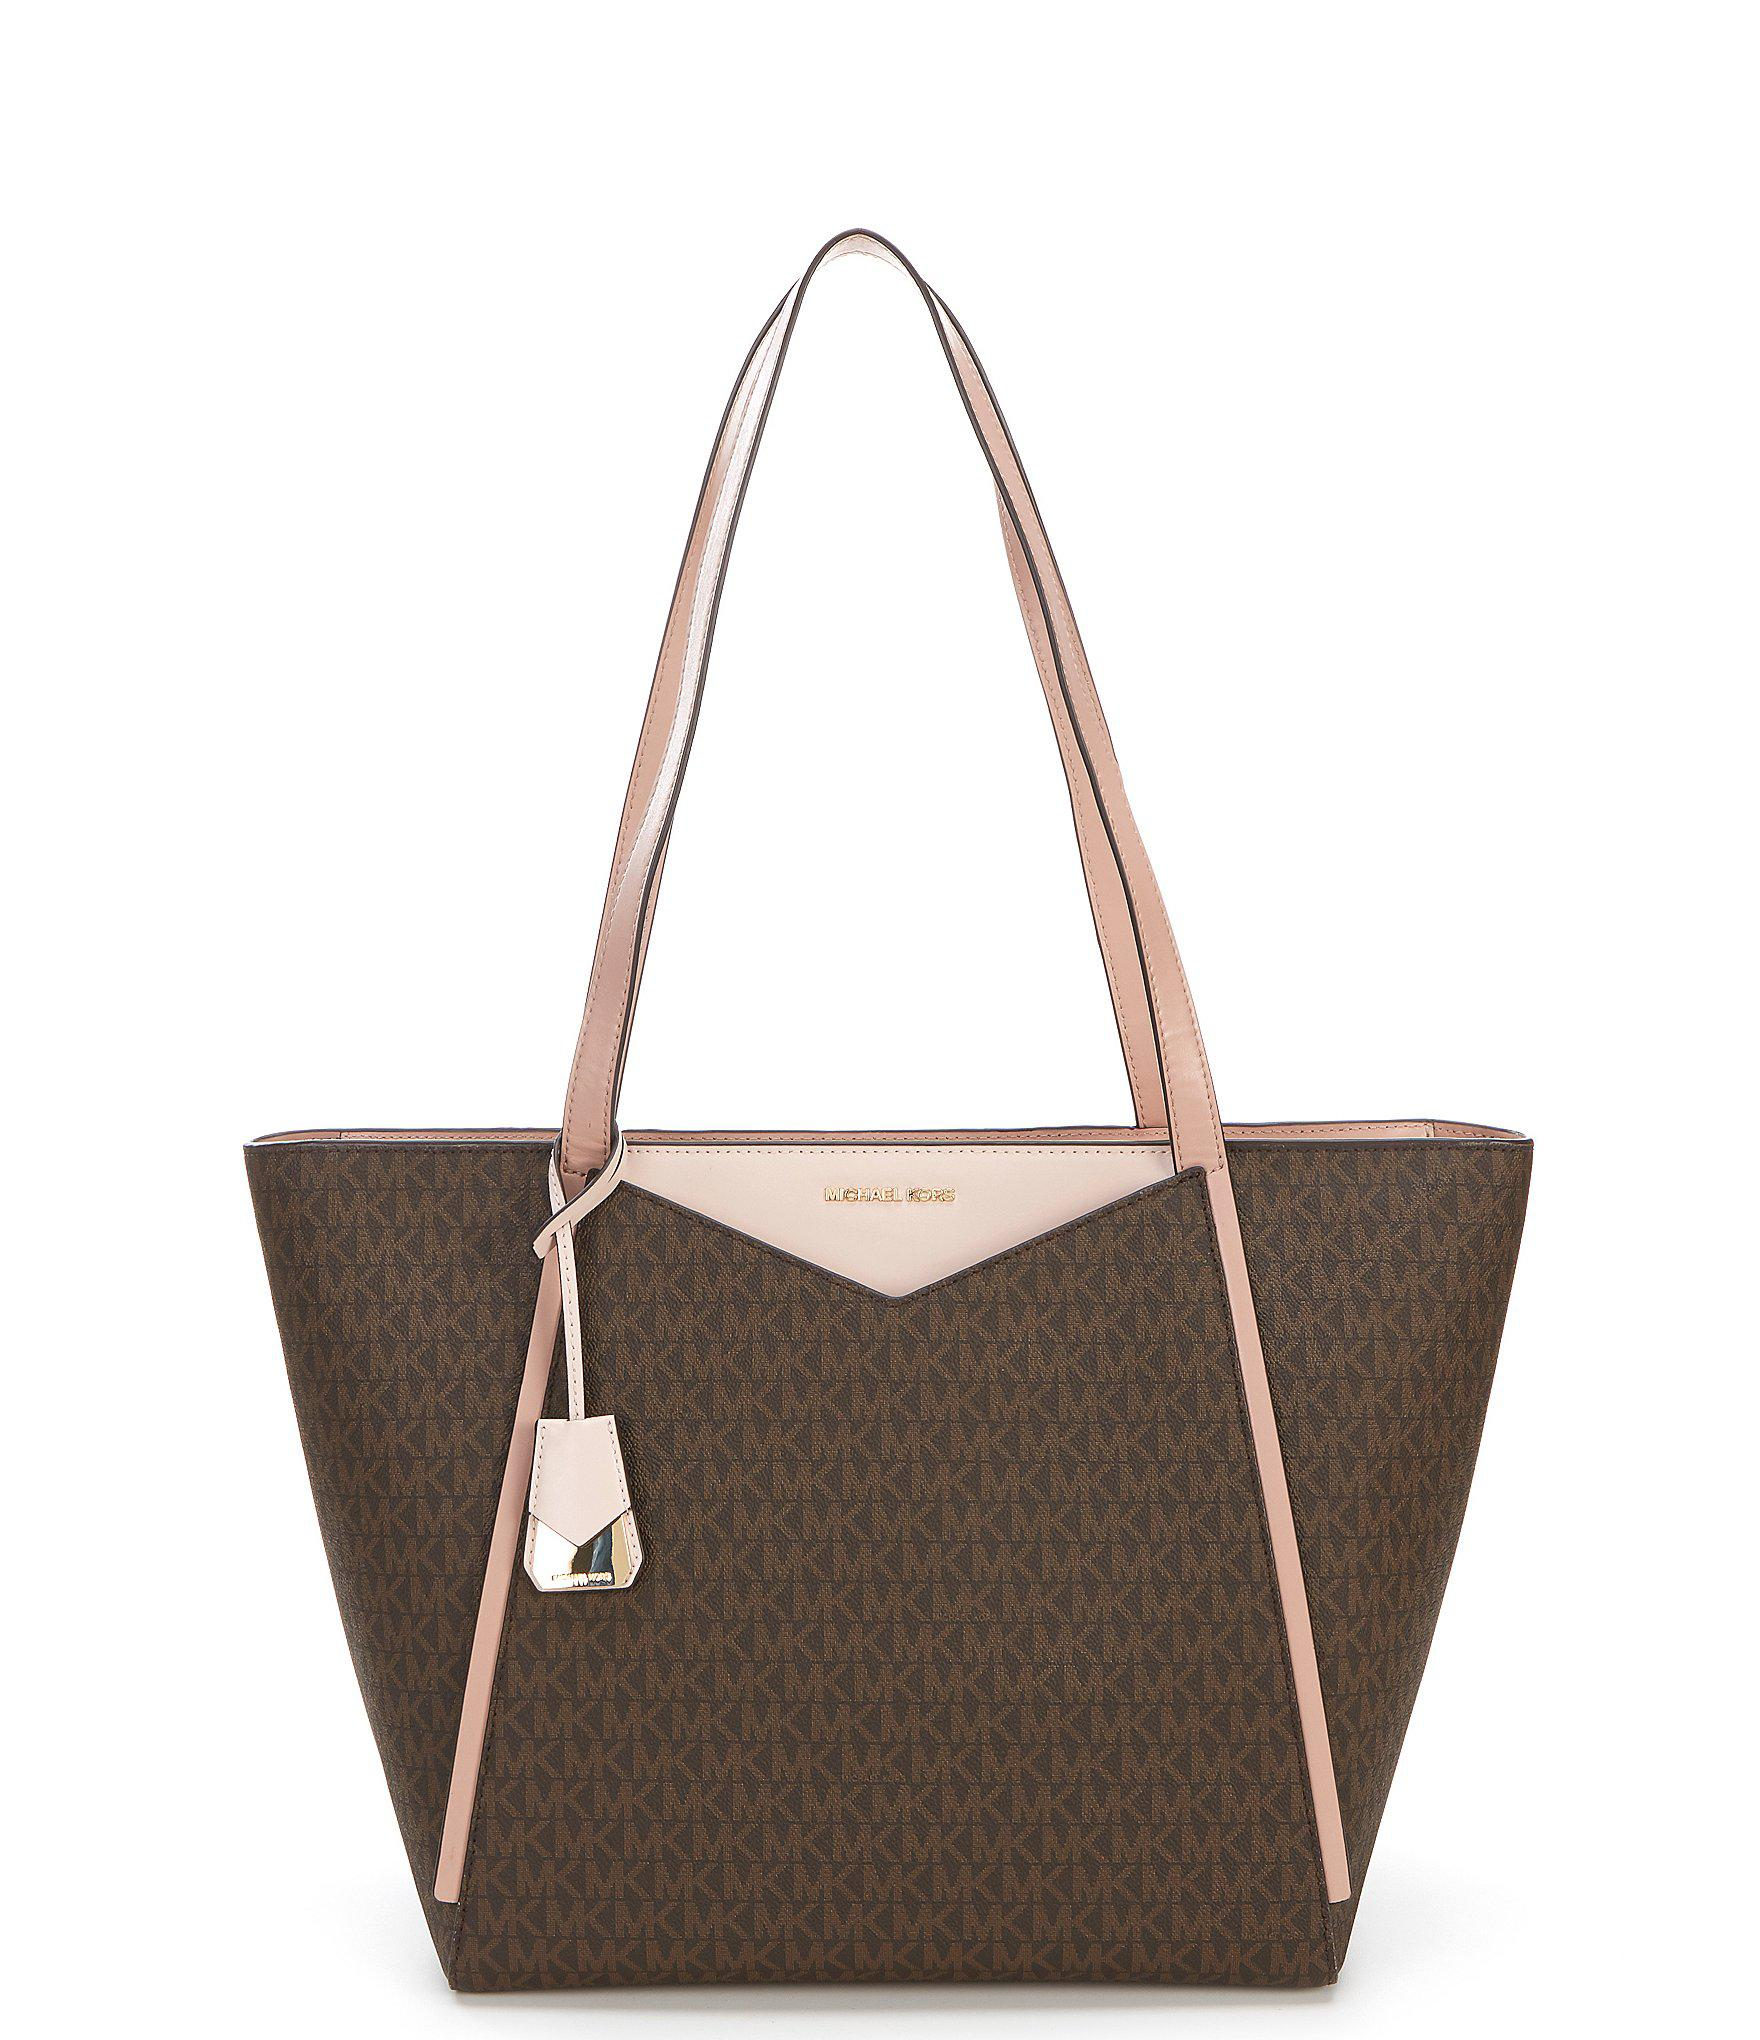 136e96e9da796 MICHAEL Michael Kors Whitney Large Top Zip Twill Tote Bag in Brown ...